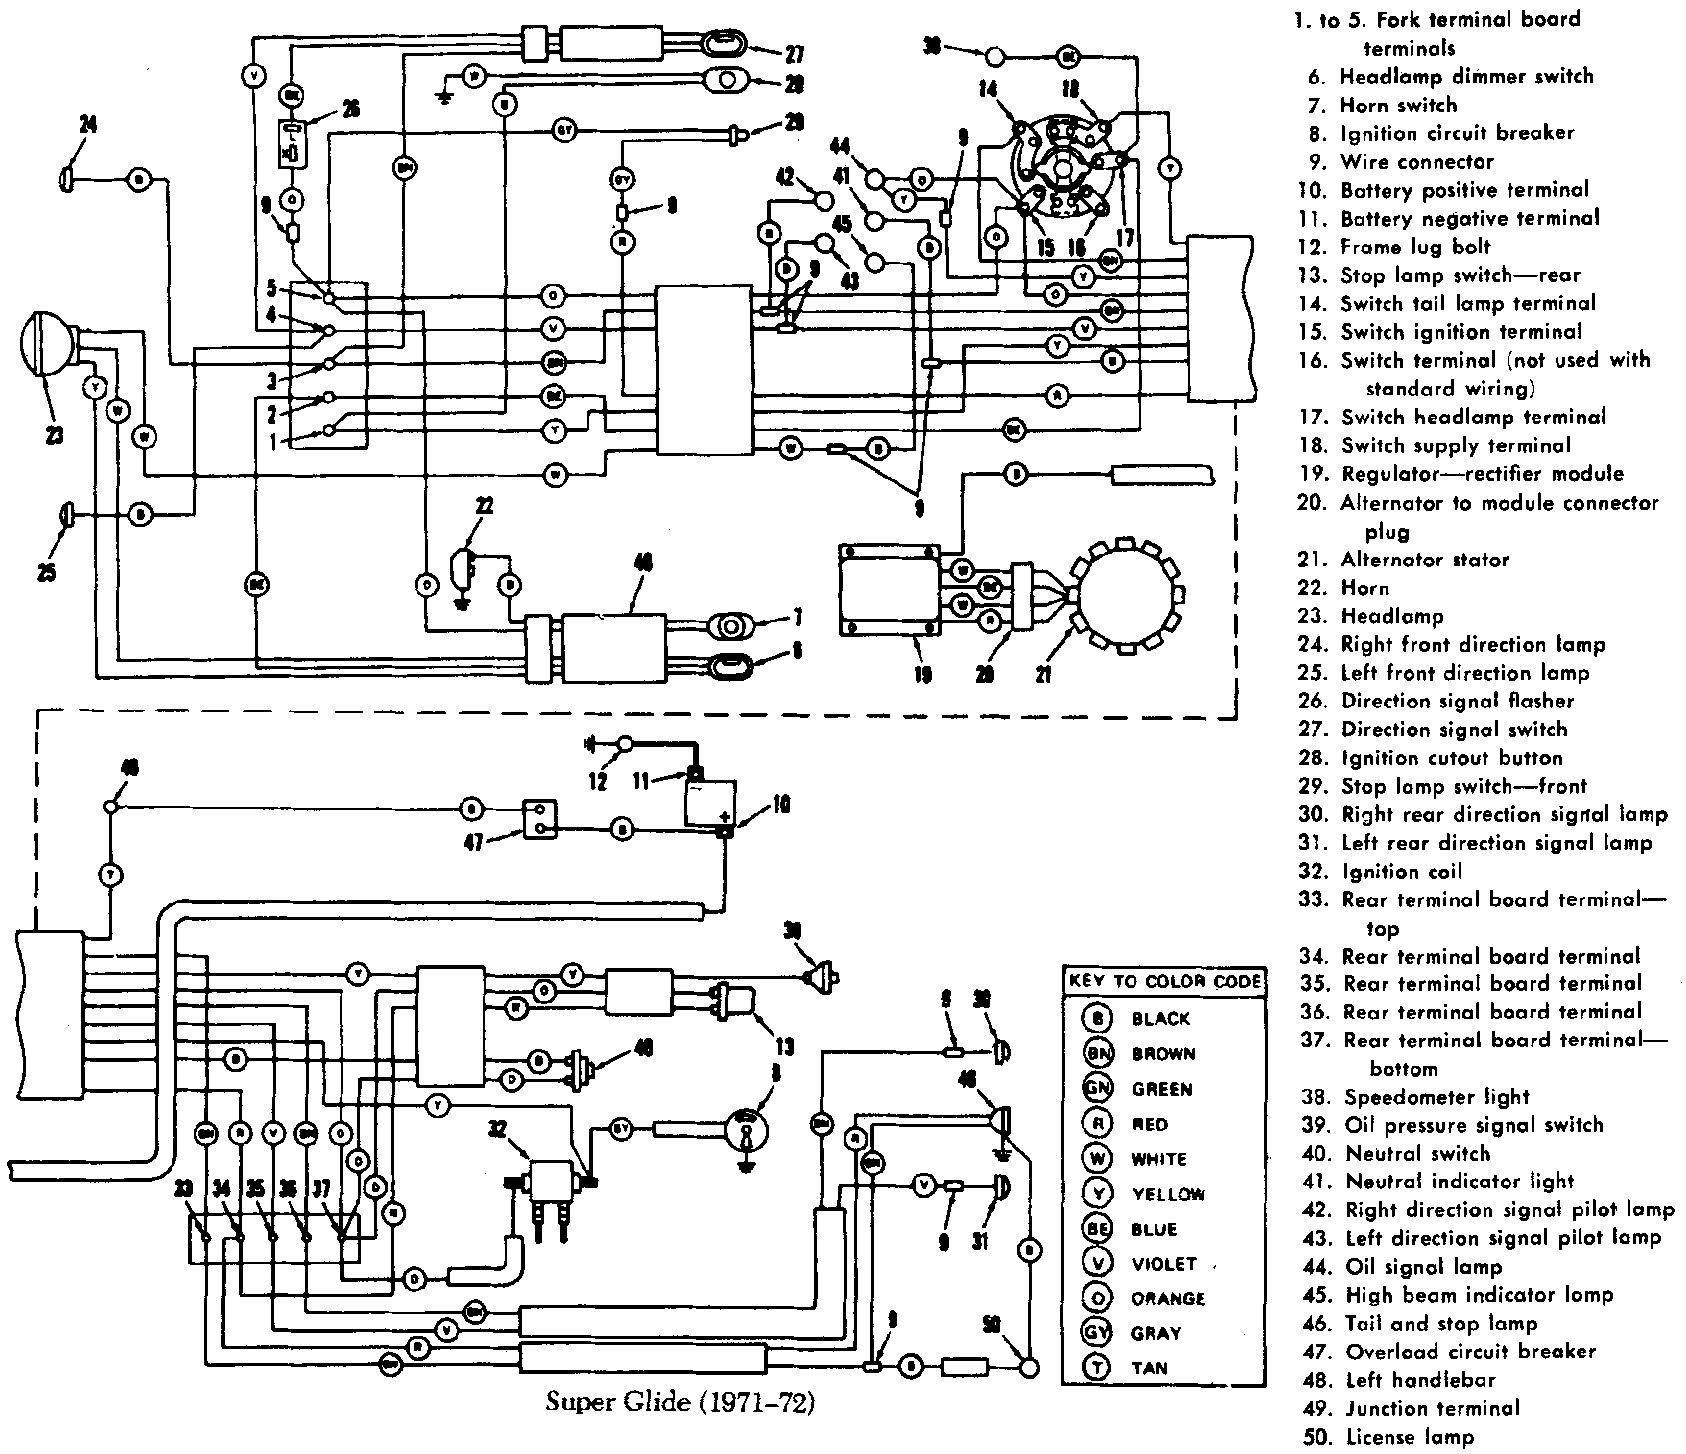 hight resolution of 1998 harley sportster wiring diagram wiring library harley dyna glide specs 1998 harley dyna wide glide starter wiring diagram